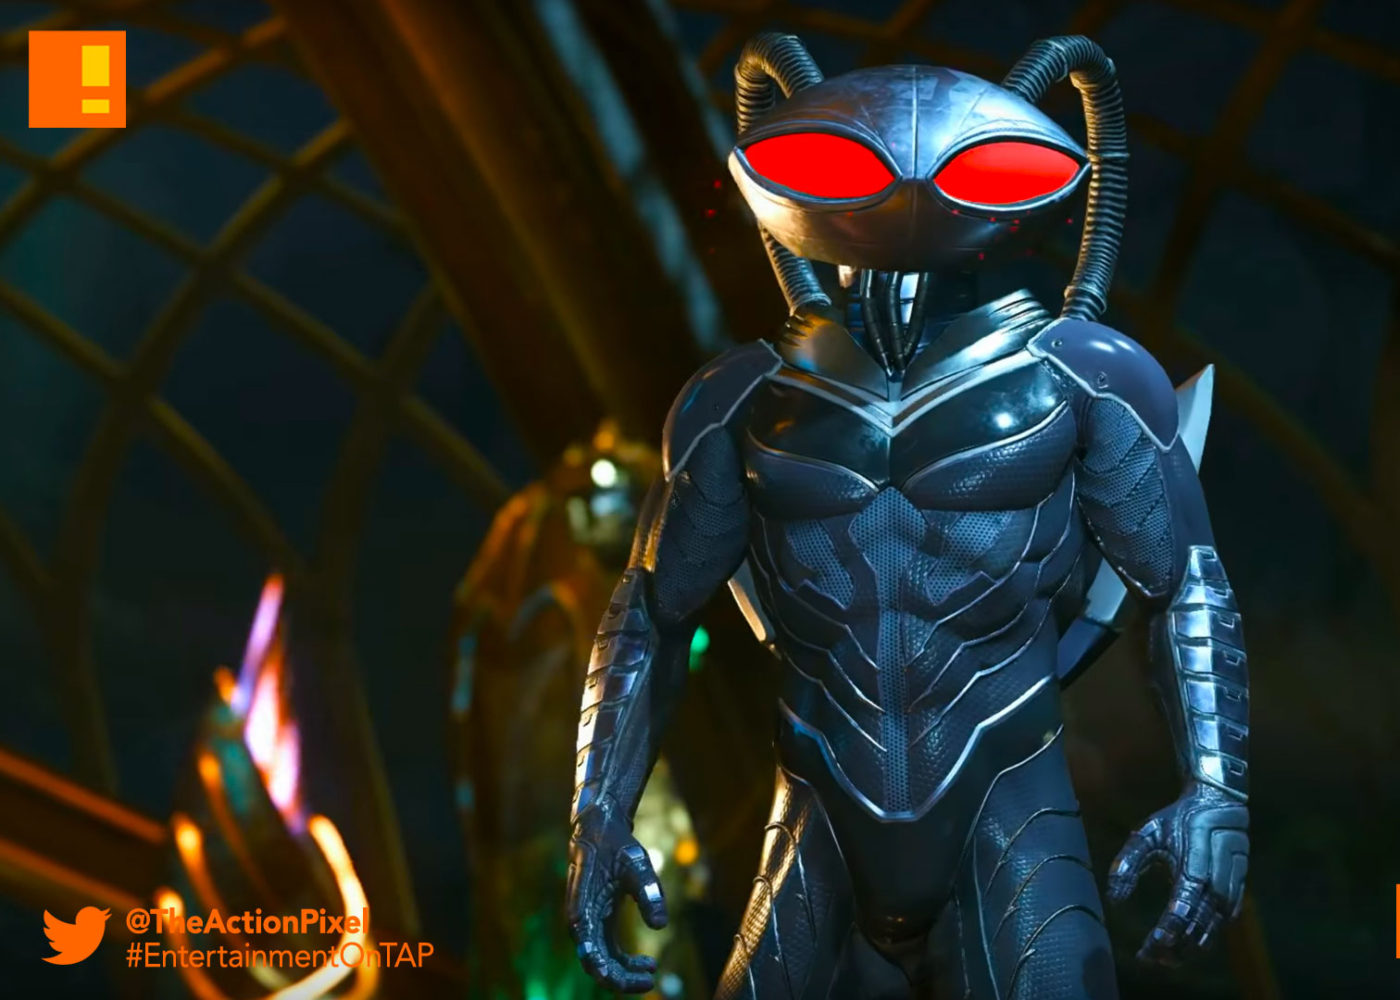 black manta, injustice 2, the action pixel, dc comics, netherrealm studios, wb games, aquaman, fighter pack 2, dlc, the action pixel, entertainment on tap